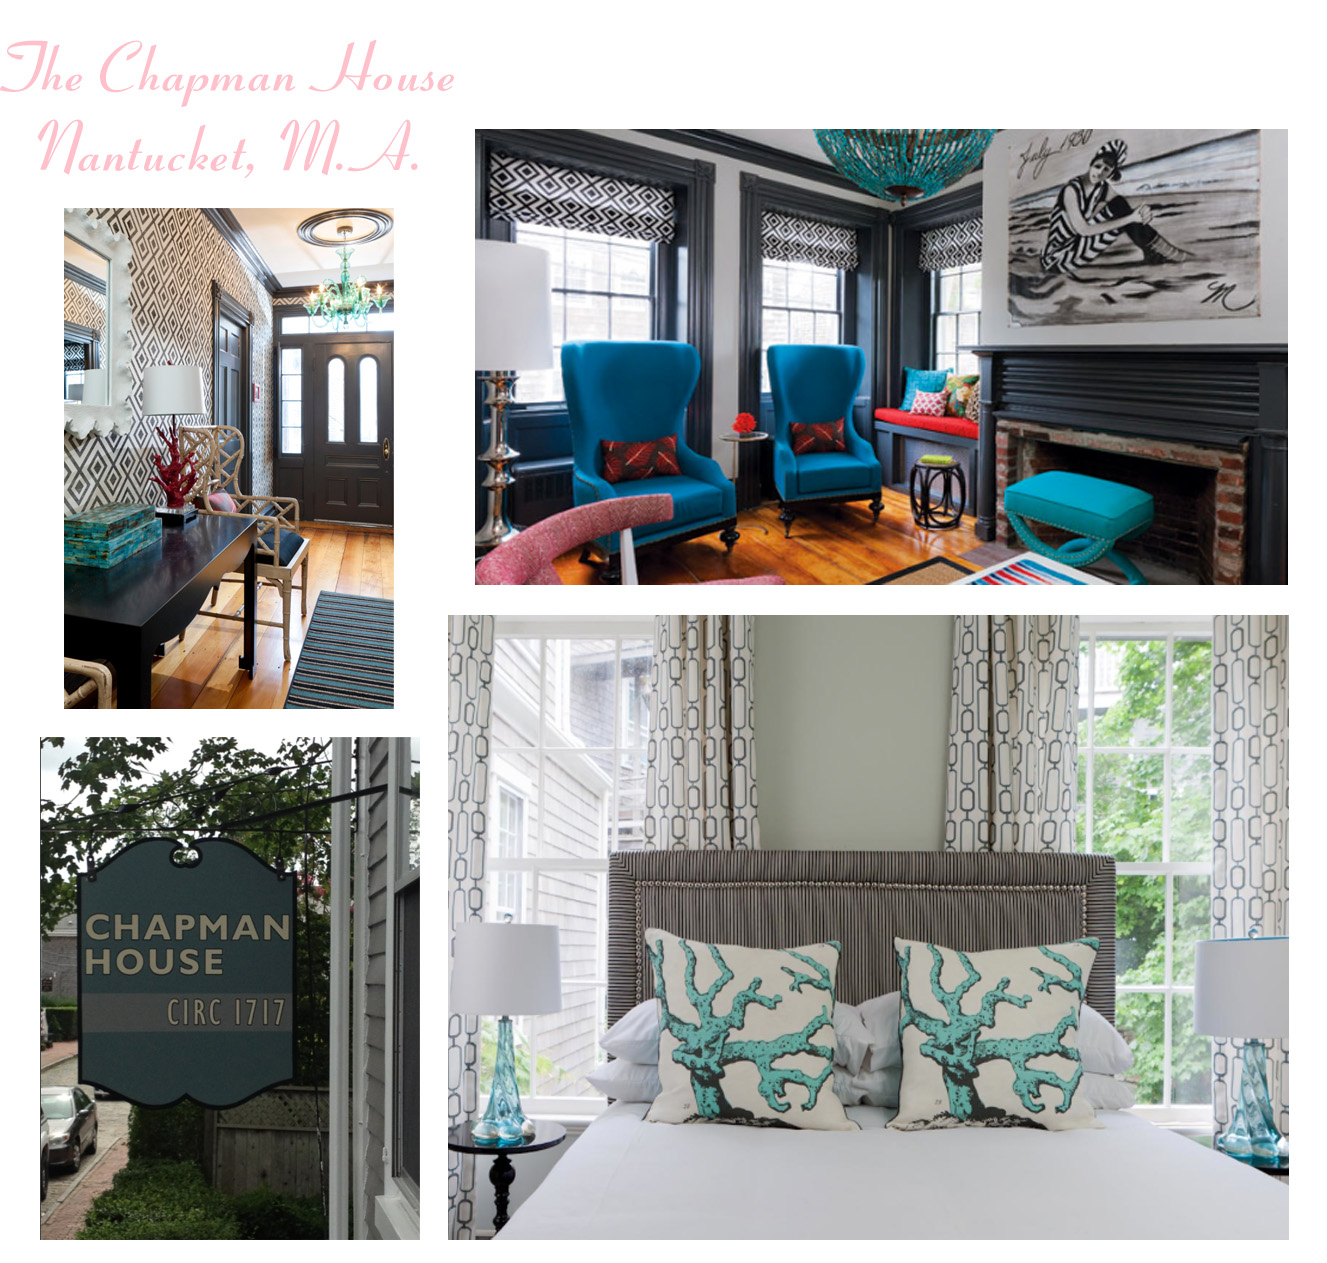 Chic retreats new england beach town b bs bona style for Chapman house